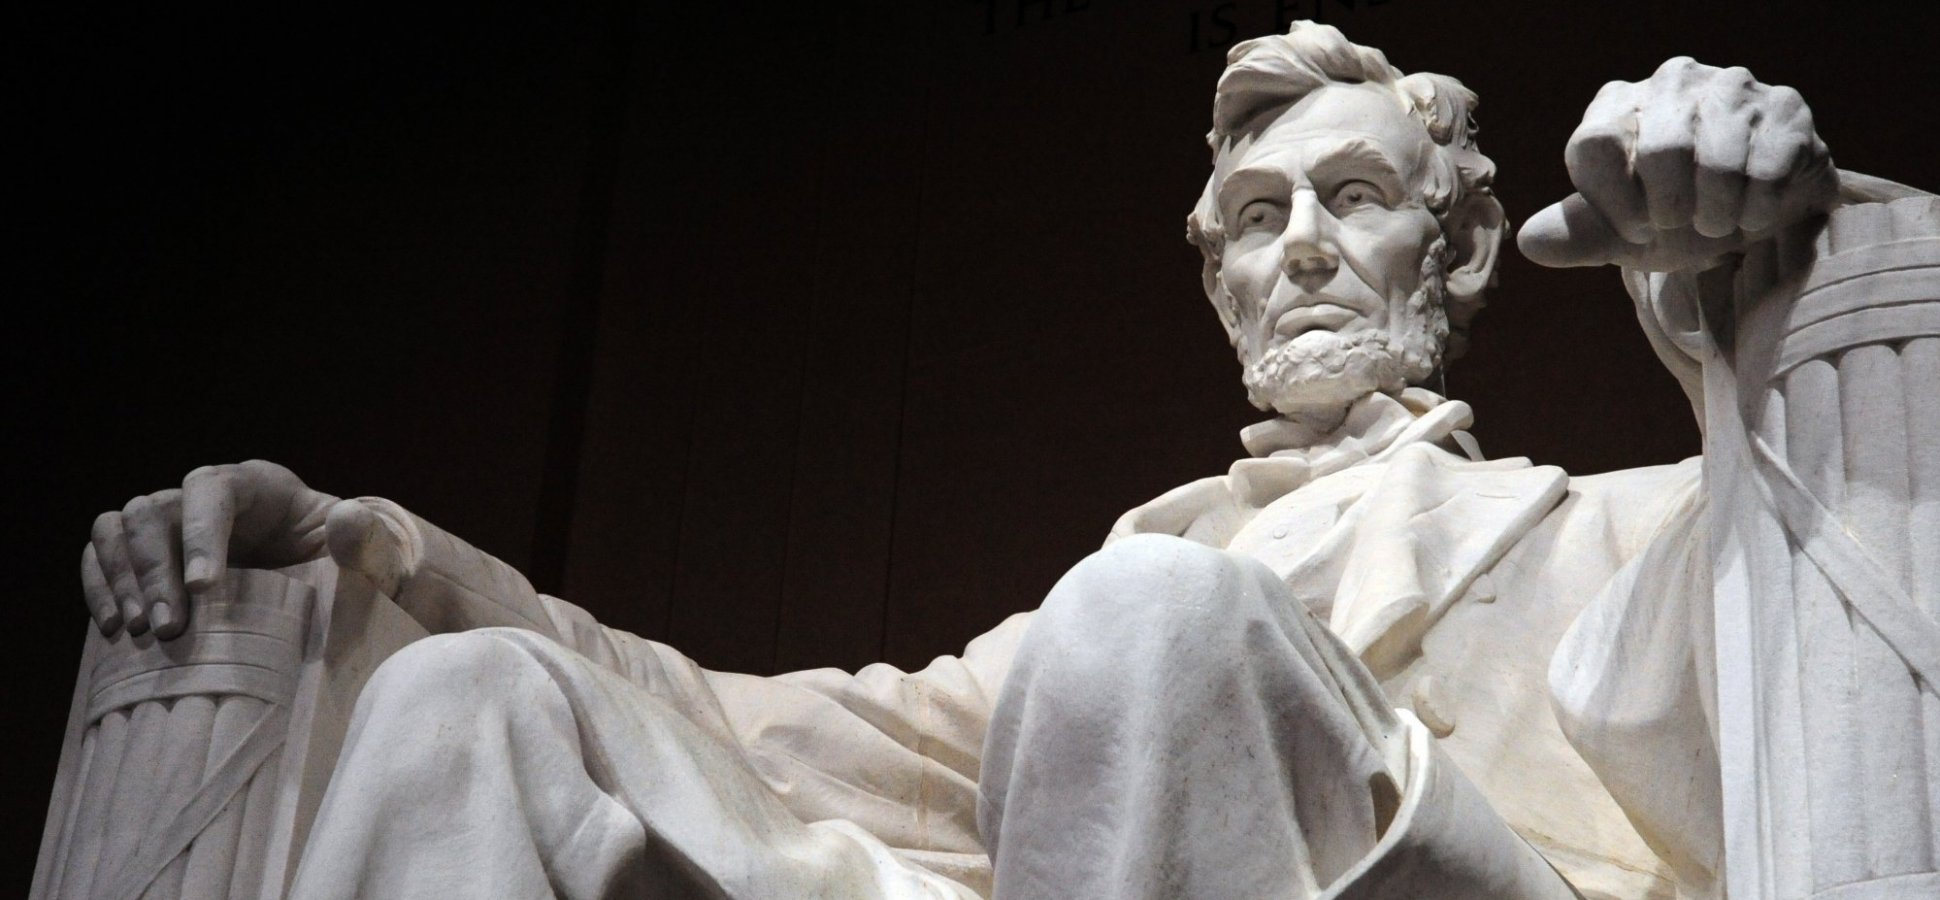 Abraham Lincoln's Gettysburg Address Is a Masterpiece in Effective Communication. Here's Why